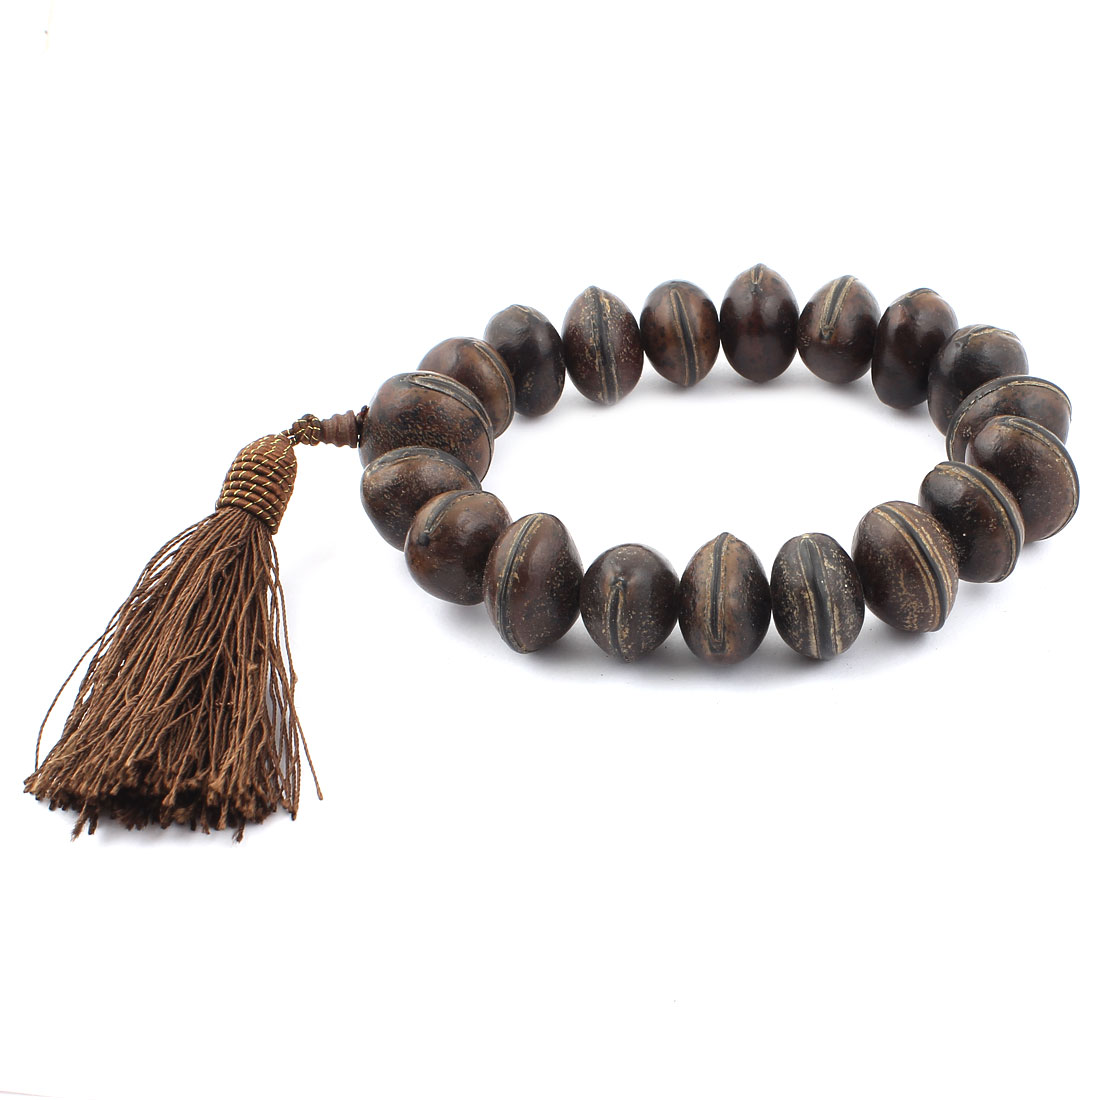 Tassel Pendant Wooden Oval Flat Bead Prayer Bangle Bracelet Dark Brown